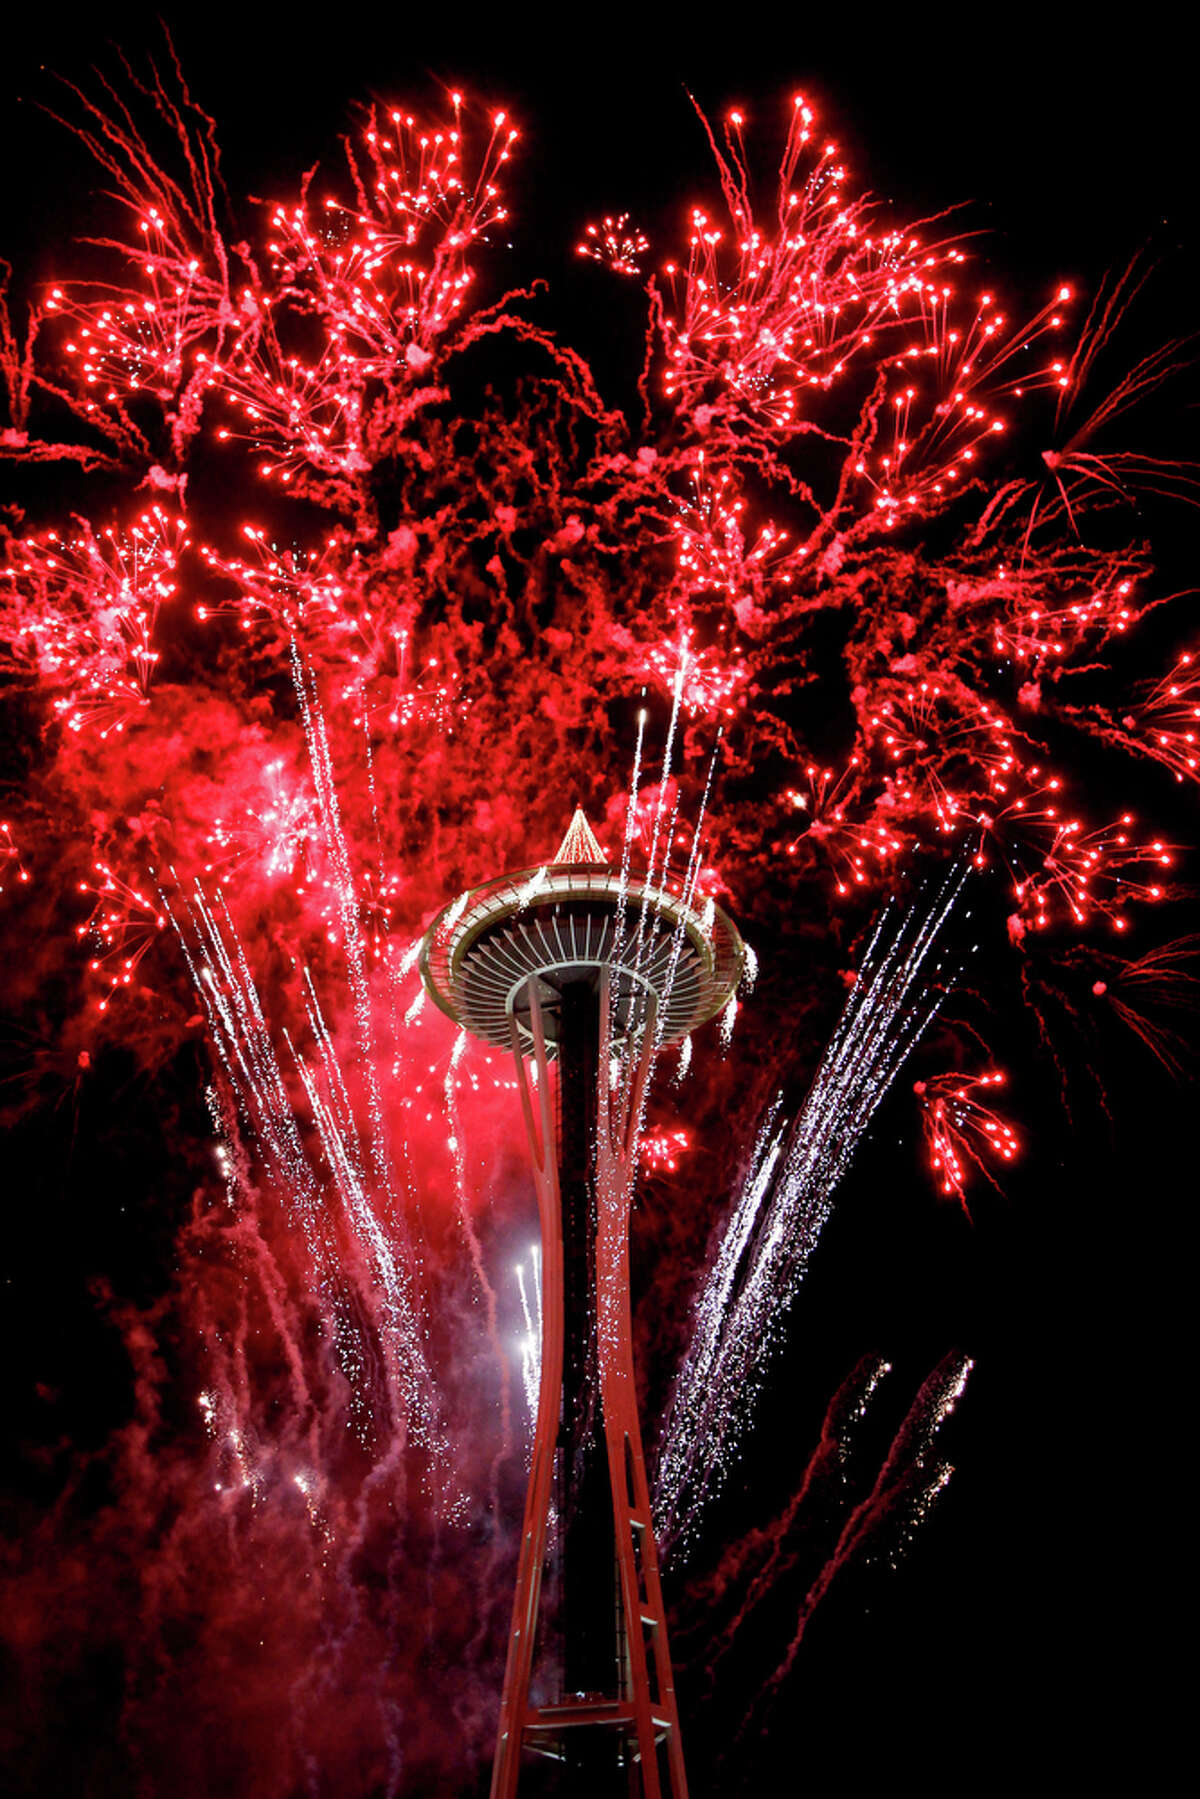 Fireworks shot from the Space Needle usher in the year 2012 during a New Years celebration in Seattle on Jan. 1, 2012.